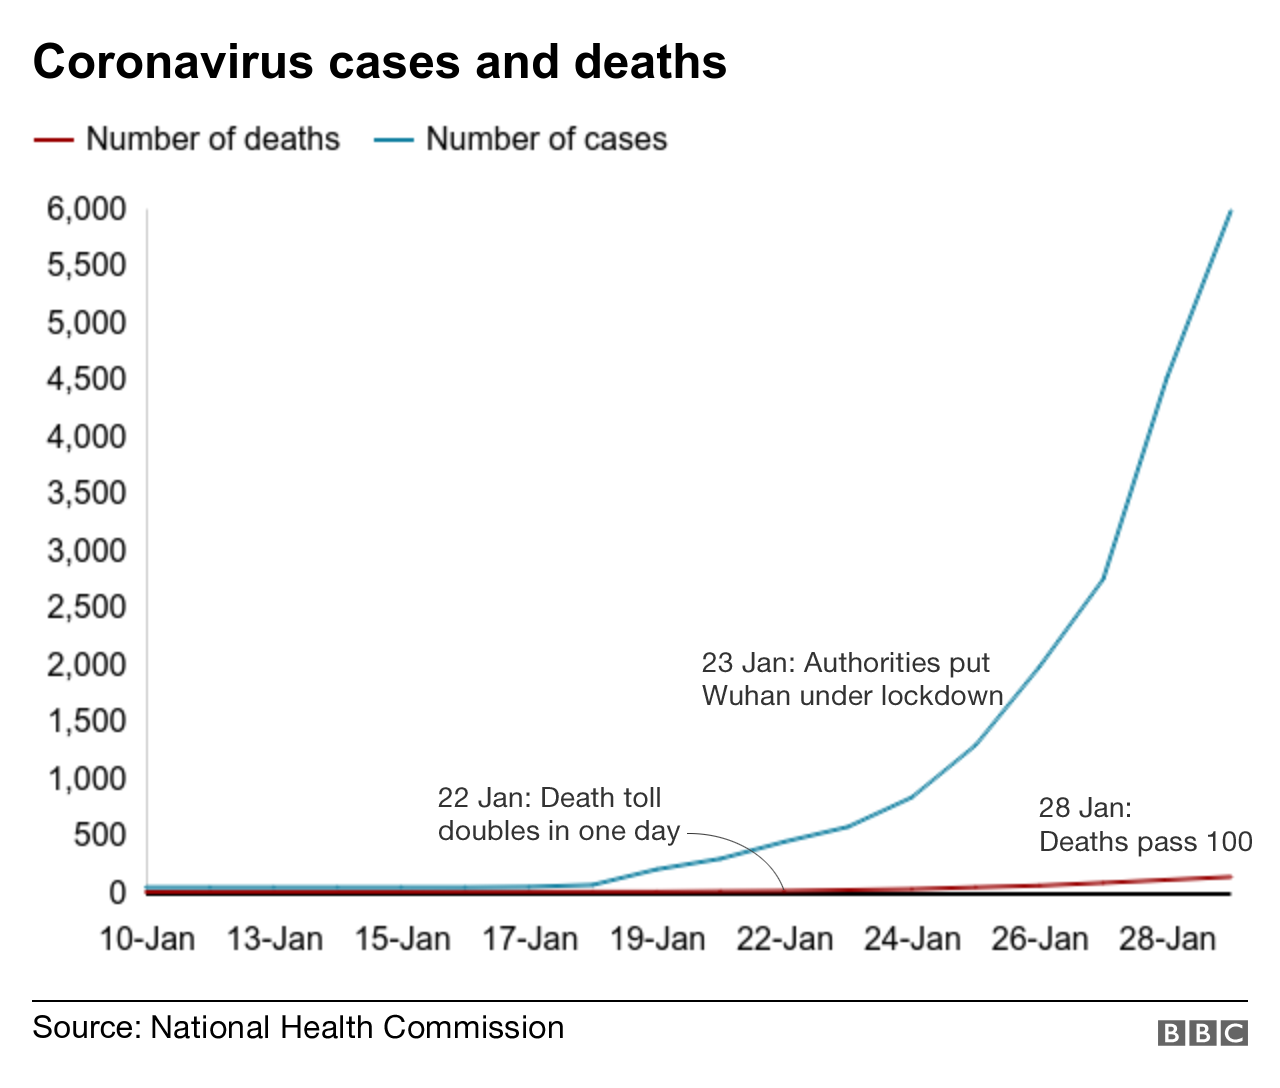 Chart showing cases and deaths from new coronavirus